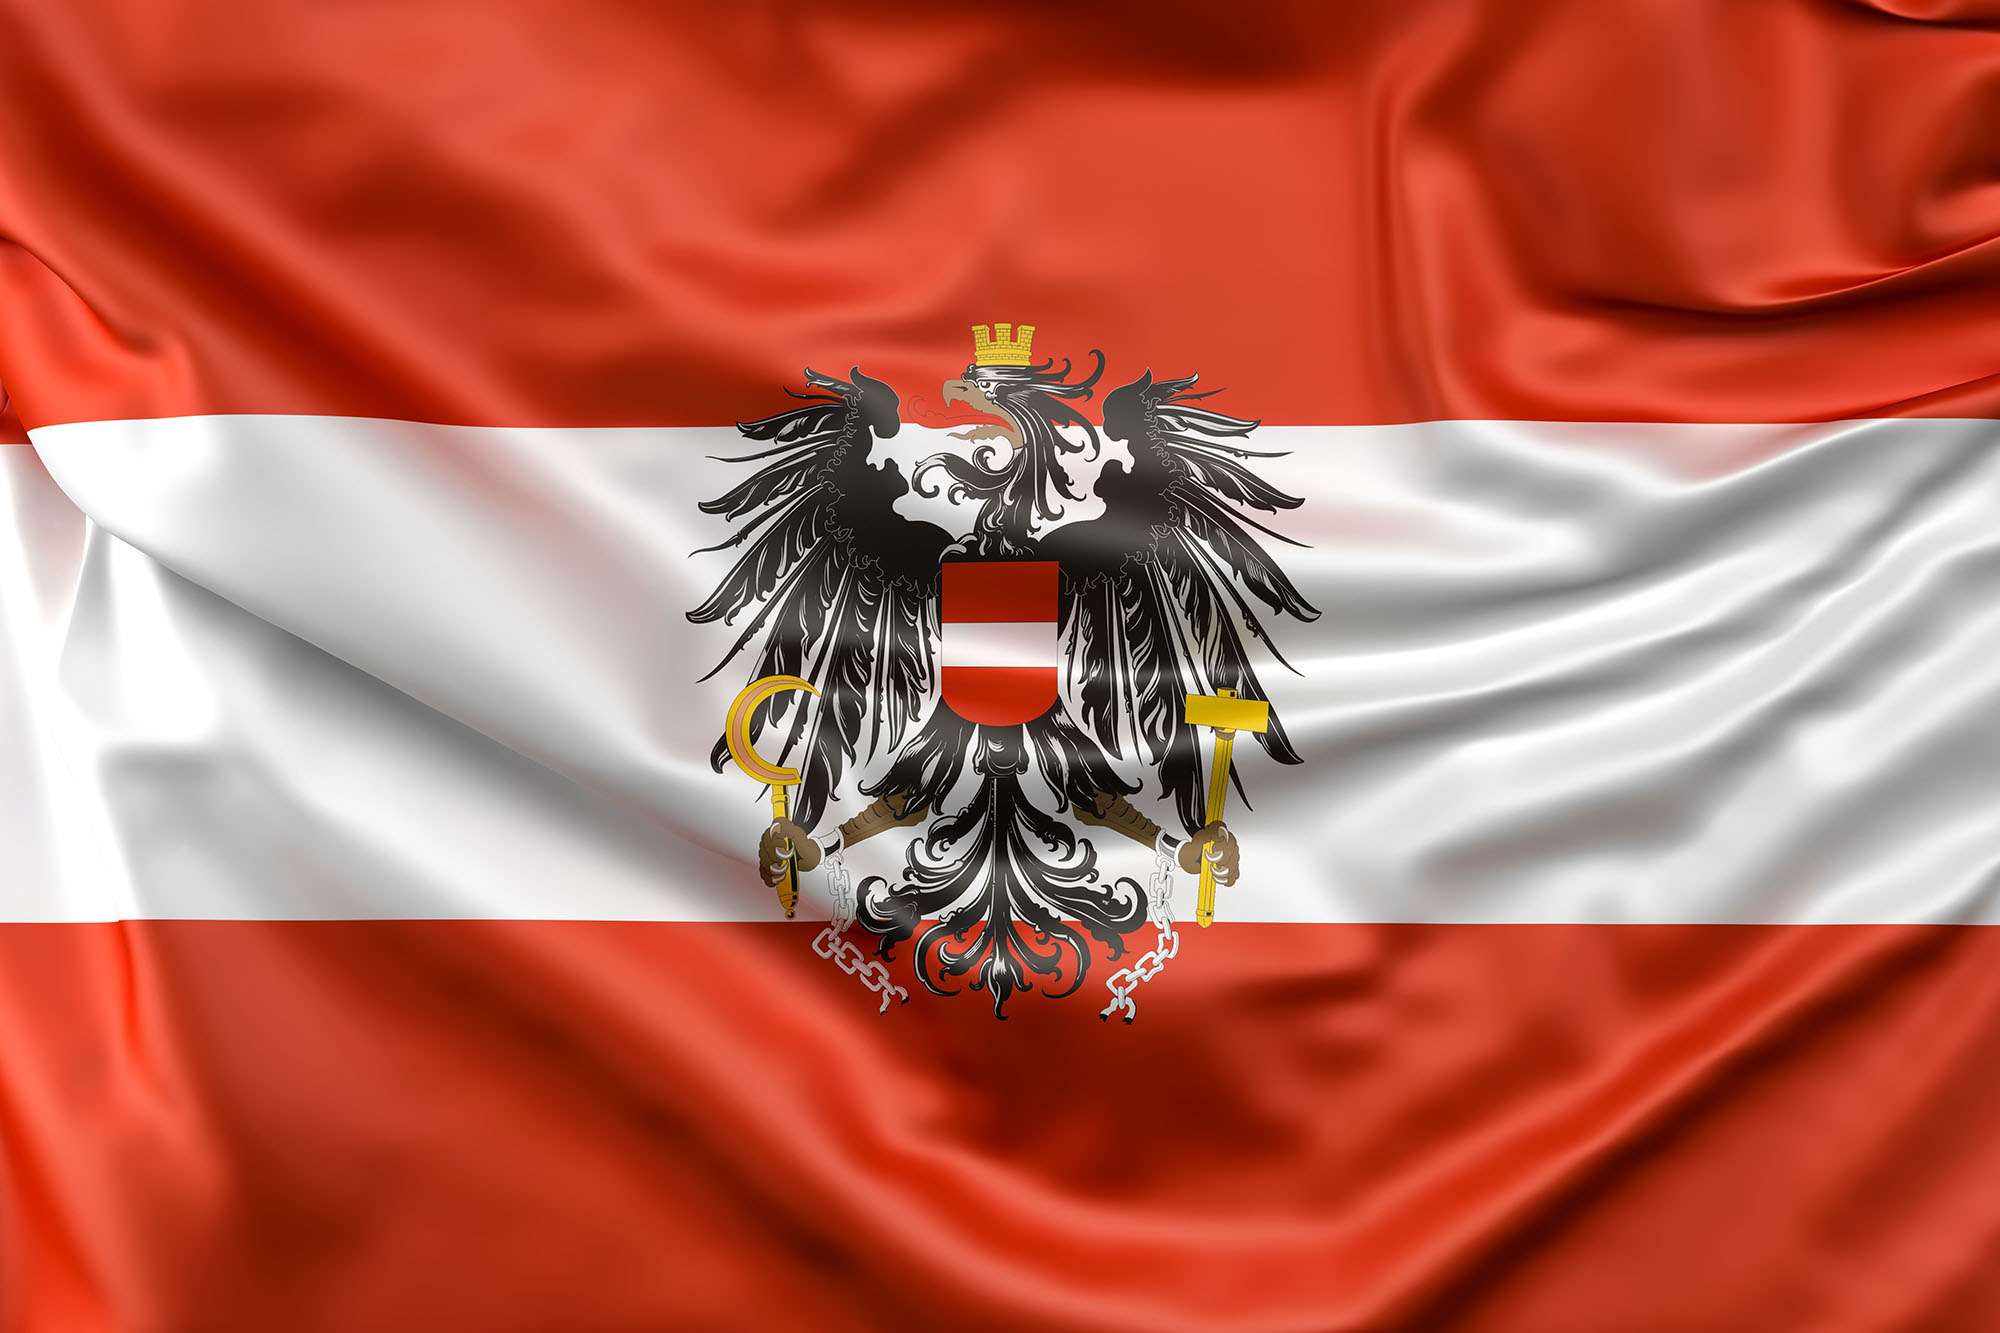 Flag of Austria with ensign